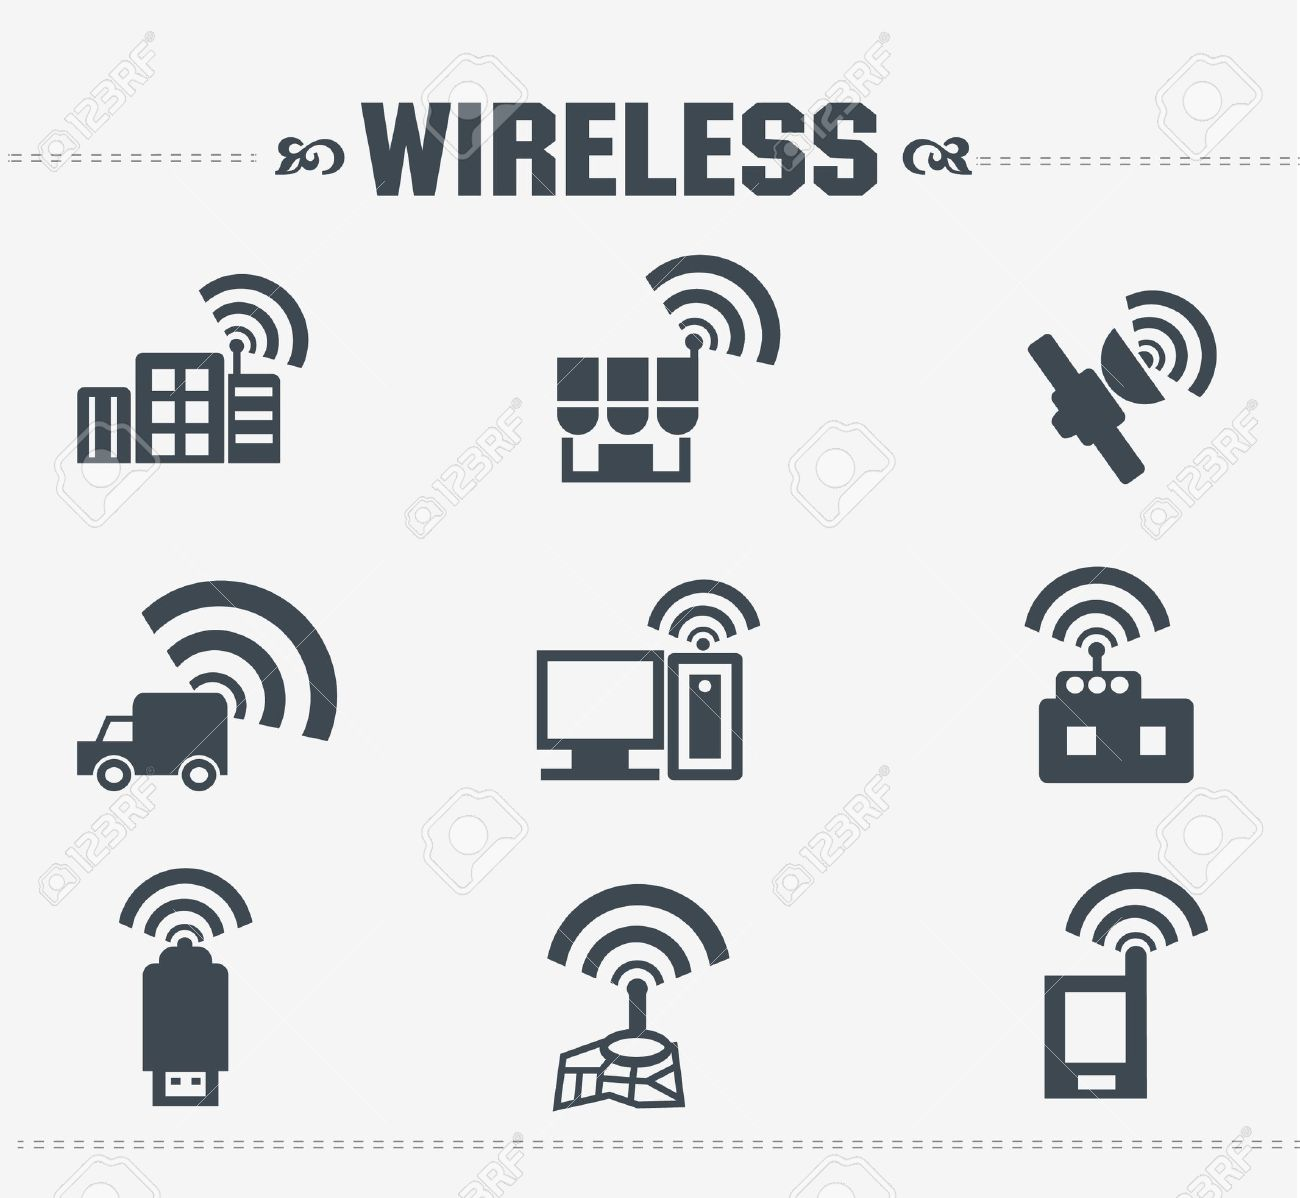 Wireless Communication Icon Set Royalty Free Cliparts, Vectors, And ...